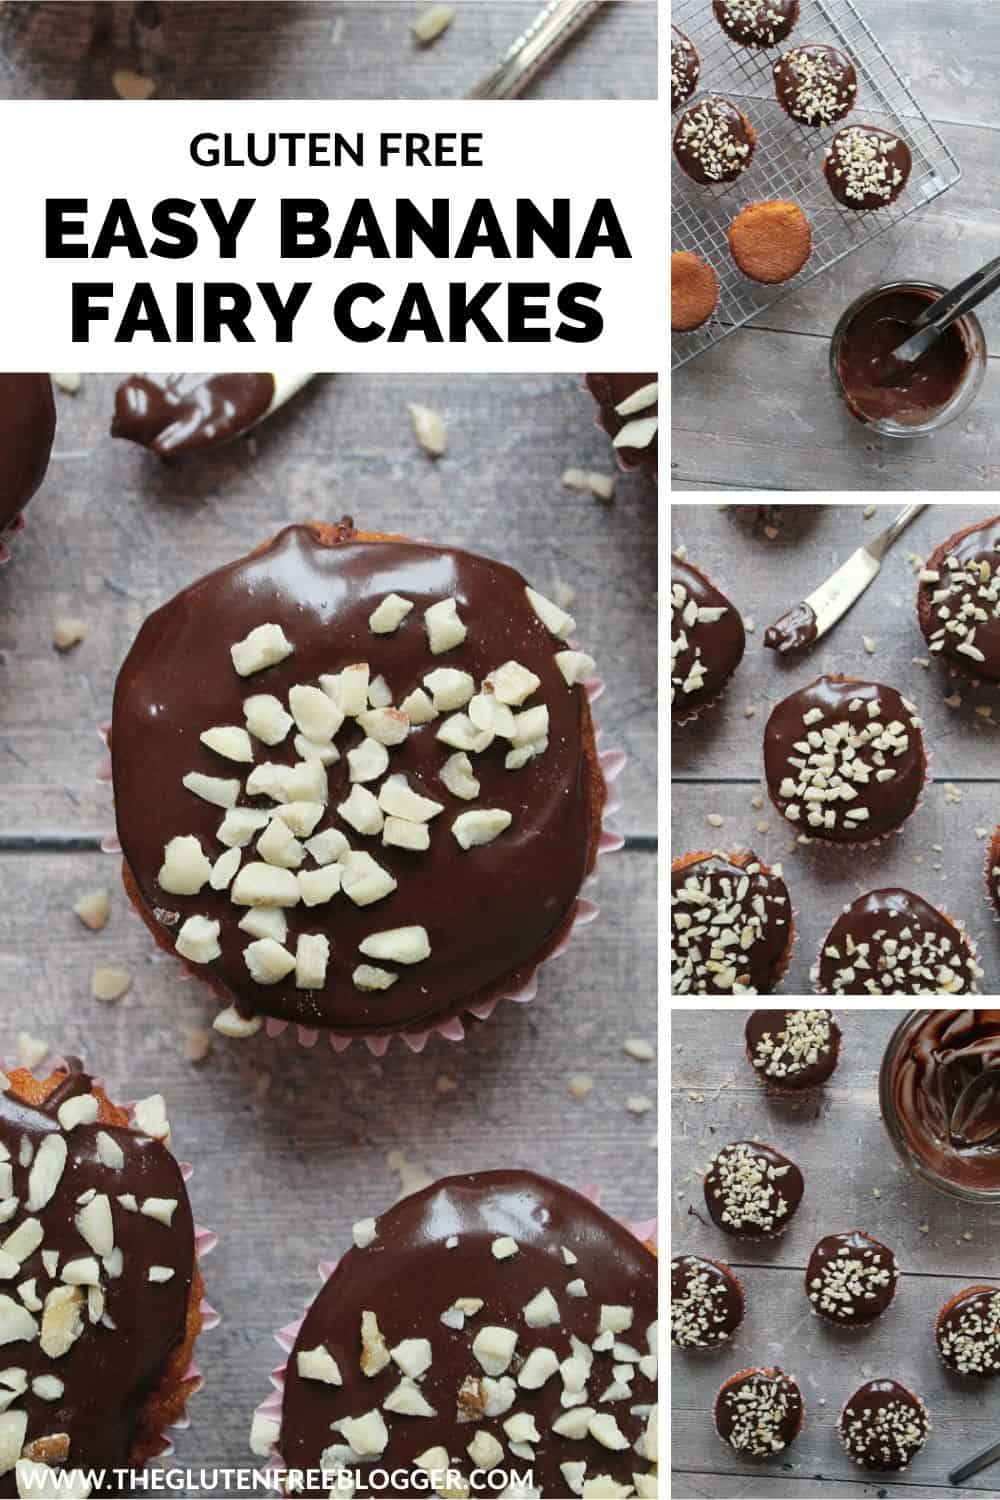 Gluten Free Banana Fairy Cakes Recipe